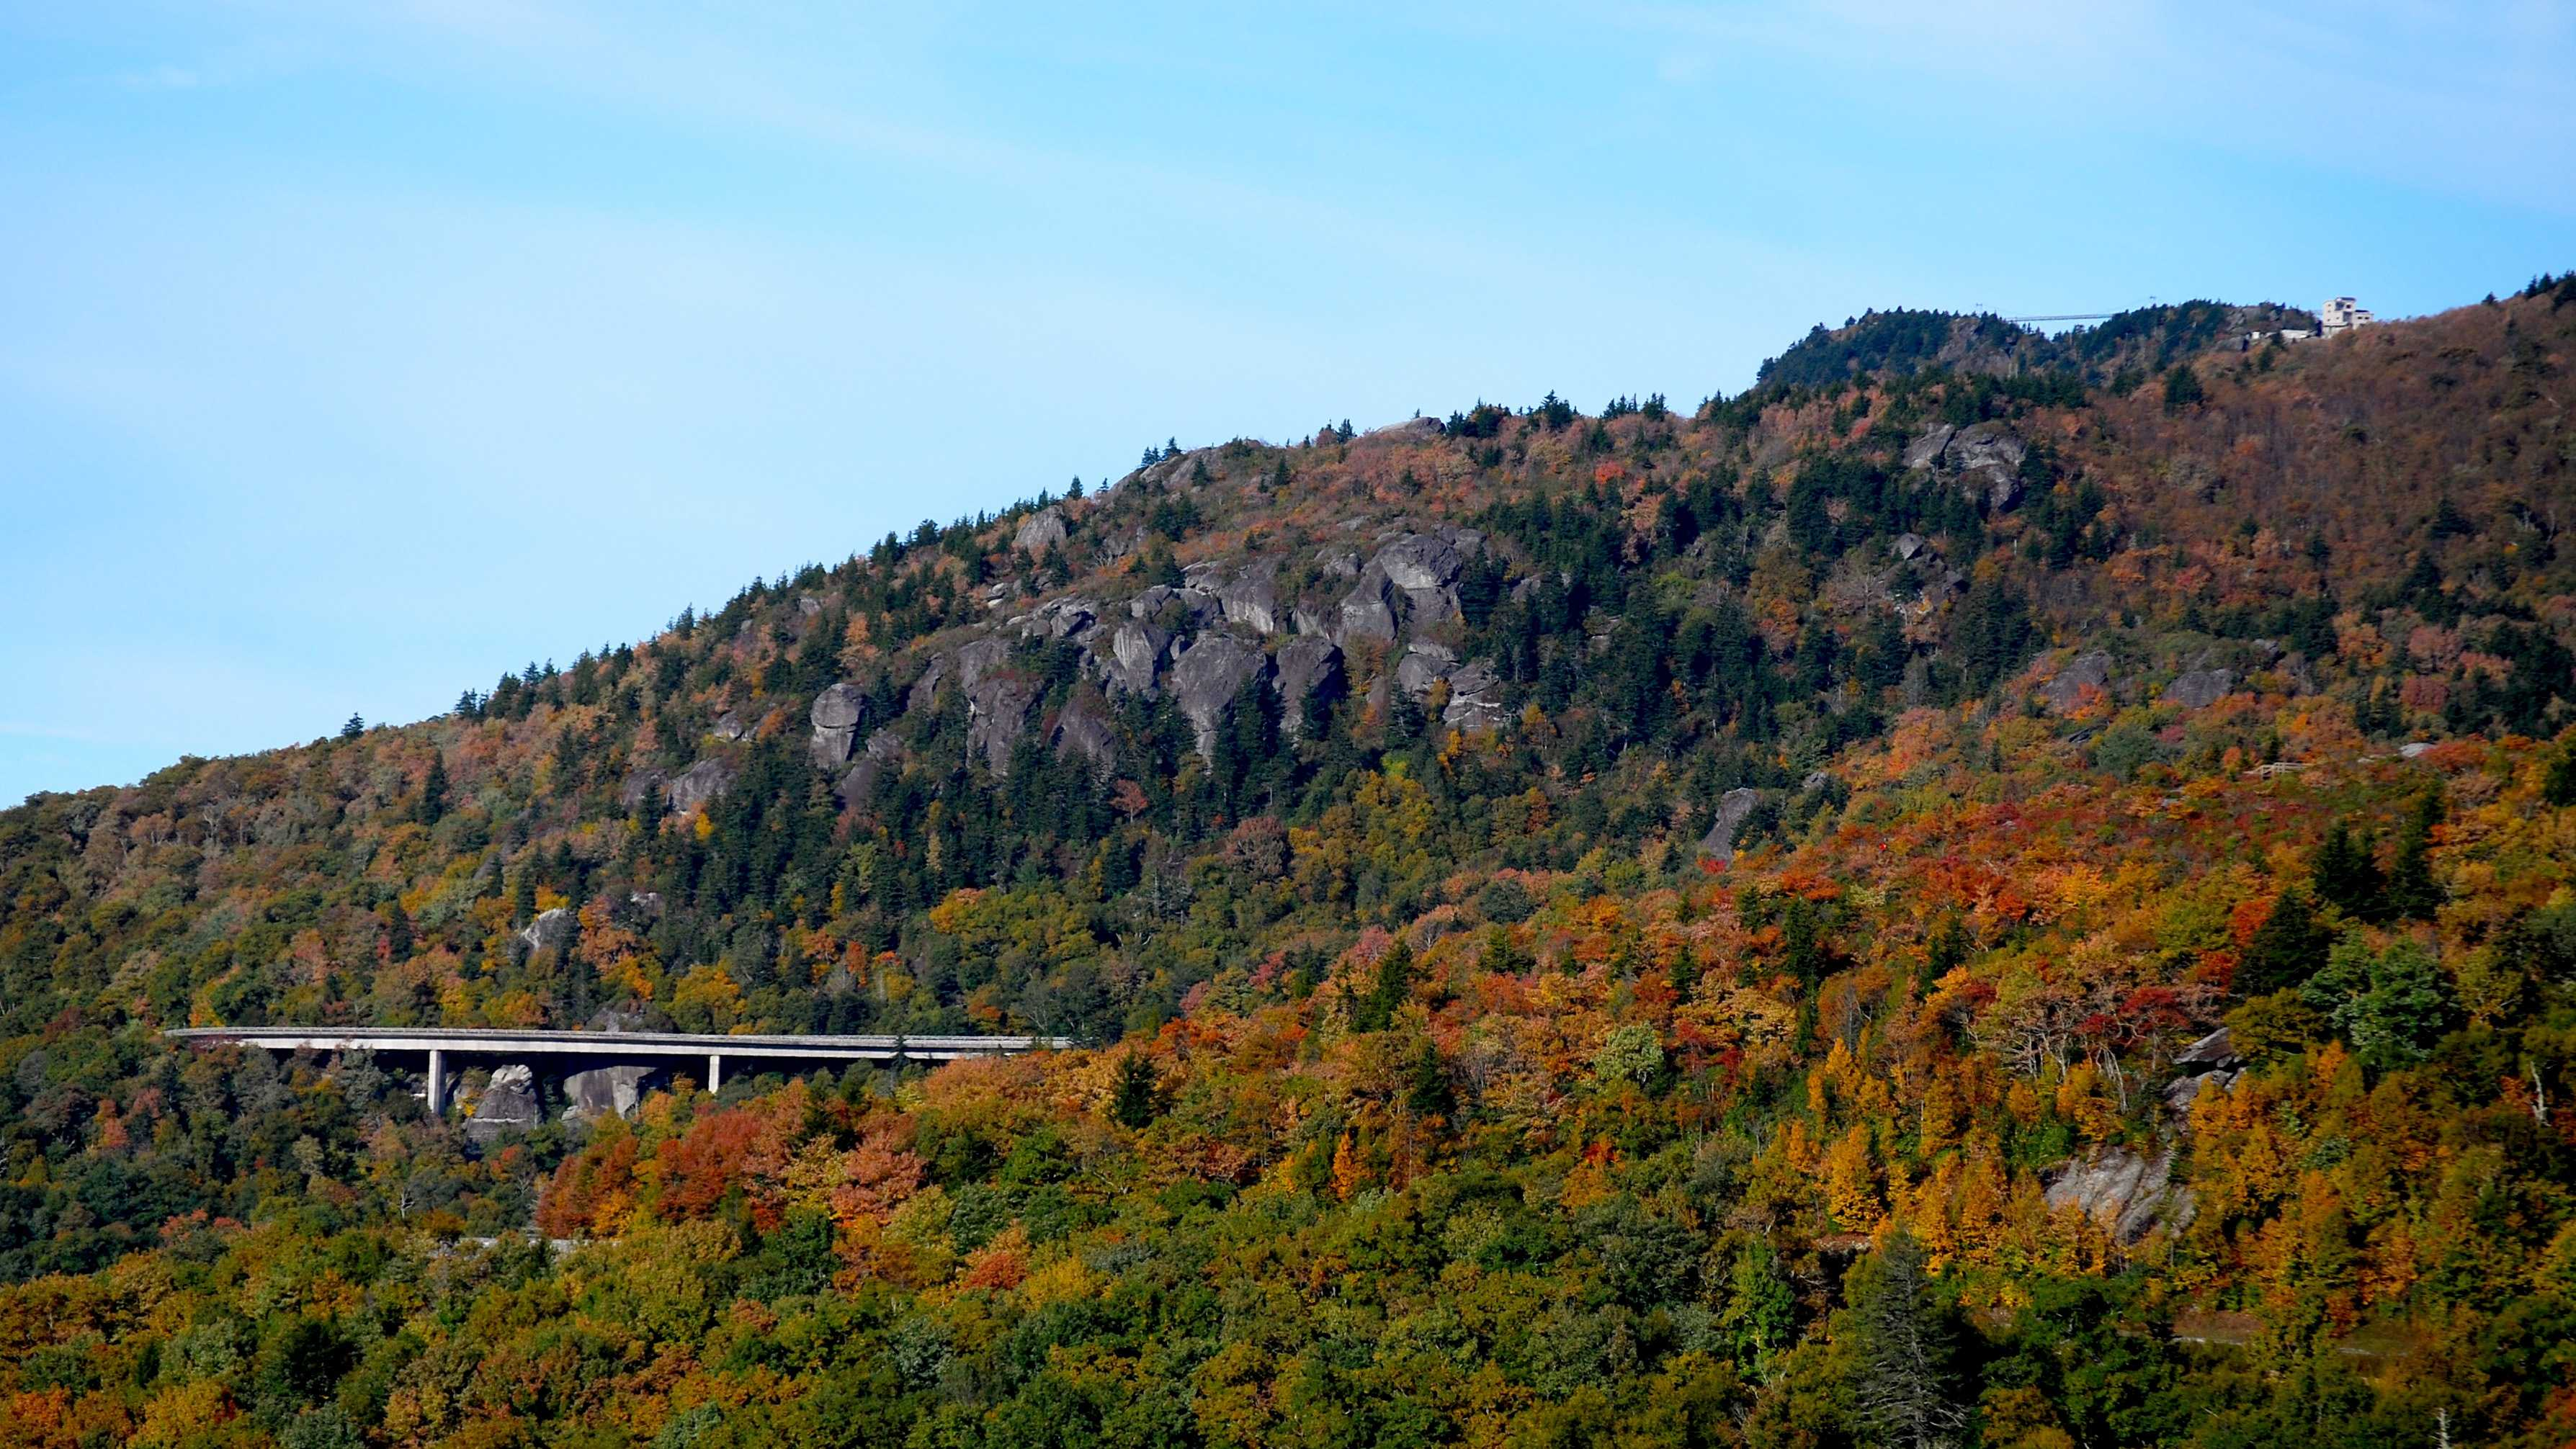 From this vantage point on the Blue Ridge Parkway, featuring the Linn Cove Viaduct and Grandfather Mountain's Mile High Swinging Bridge and Top Shop, viewers can observe the stratifying effect elevation has on fall color.